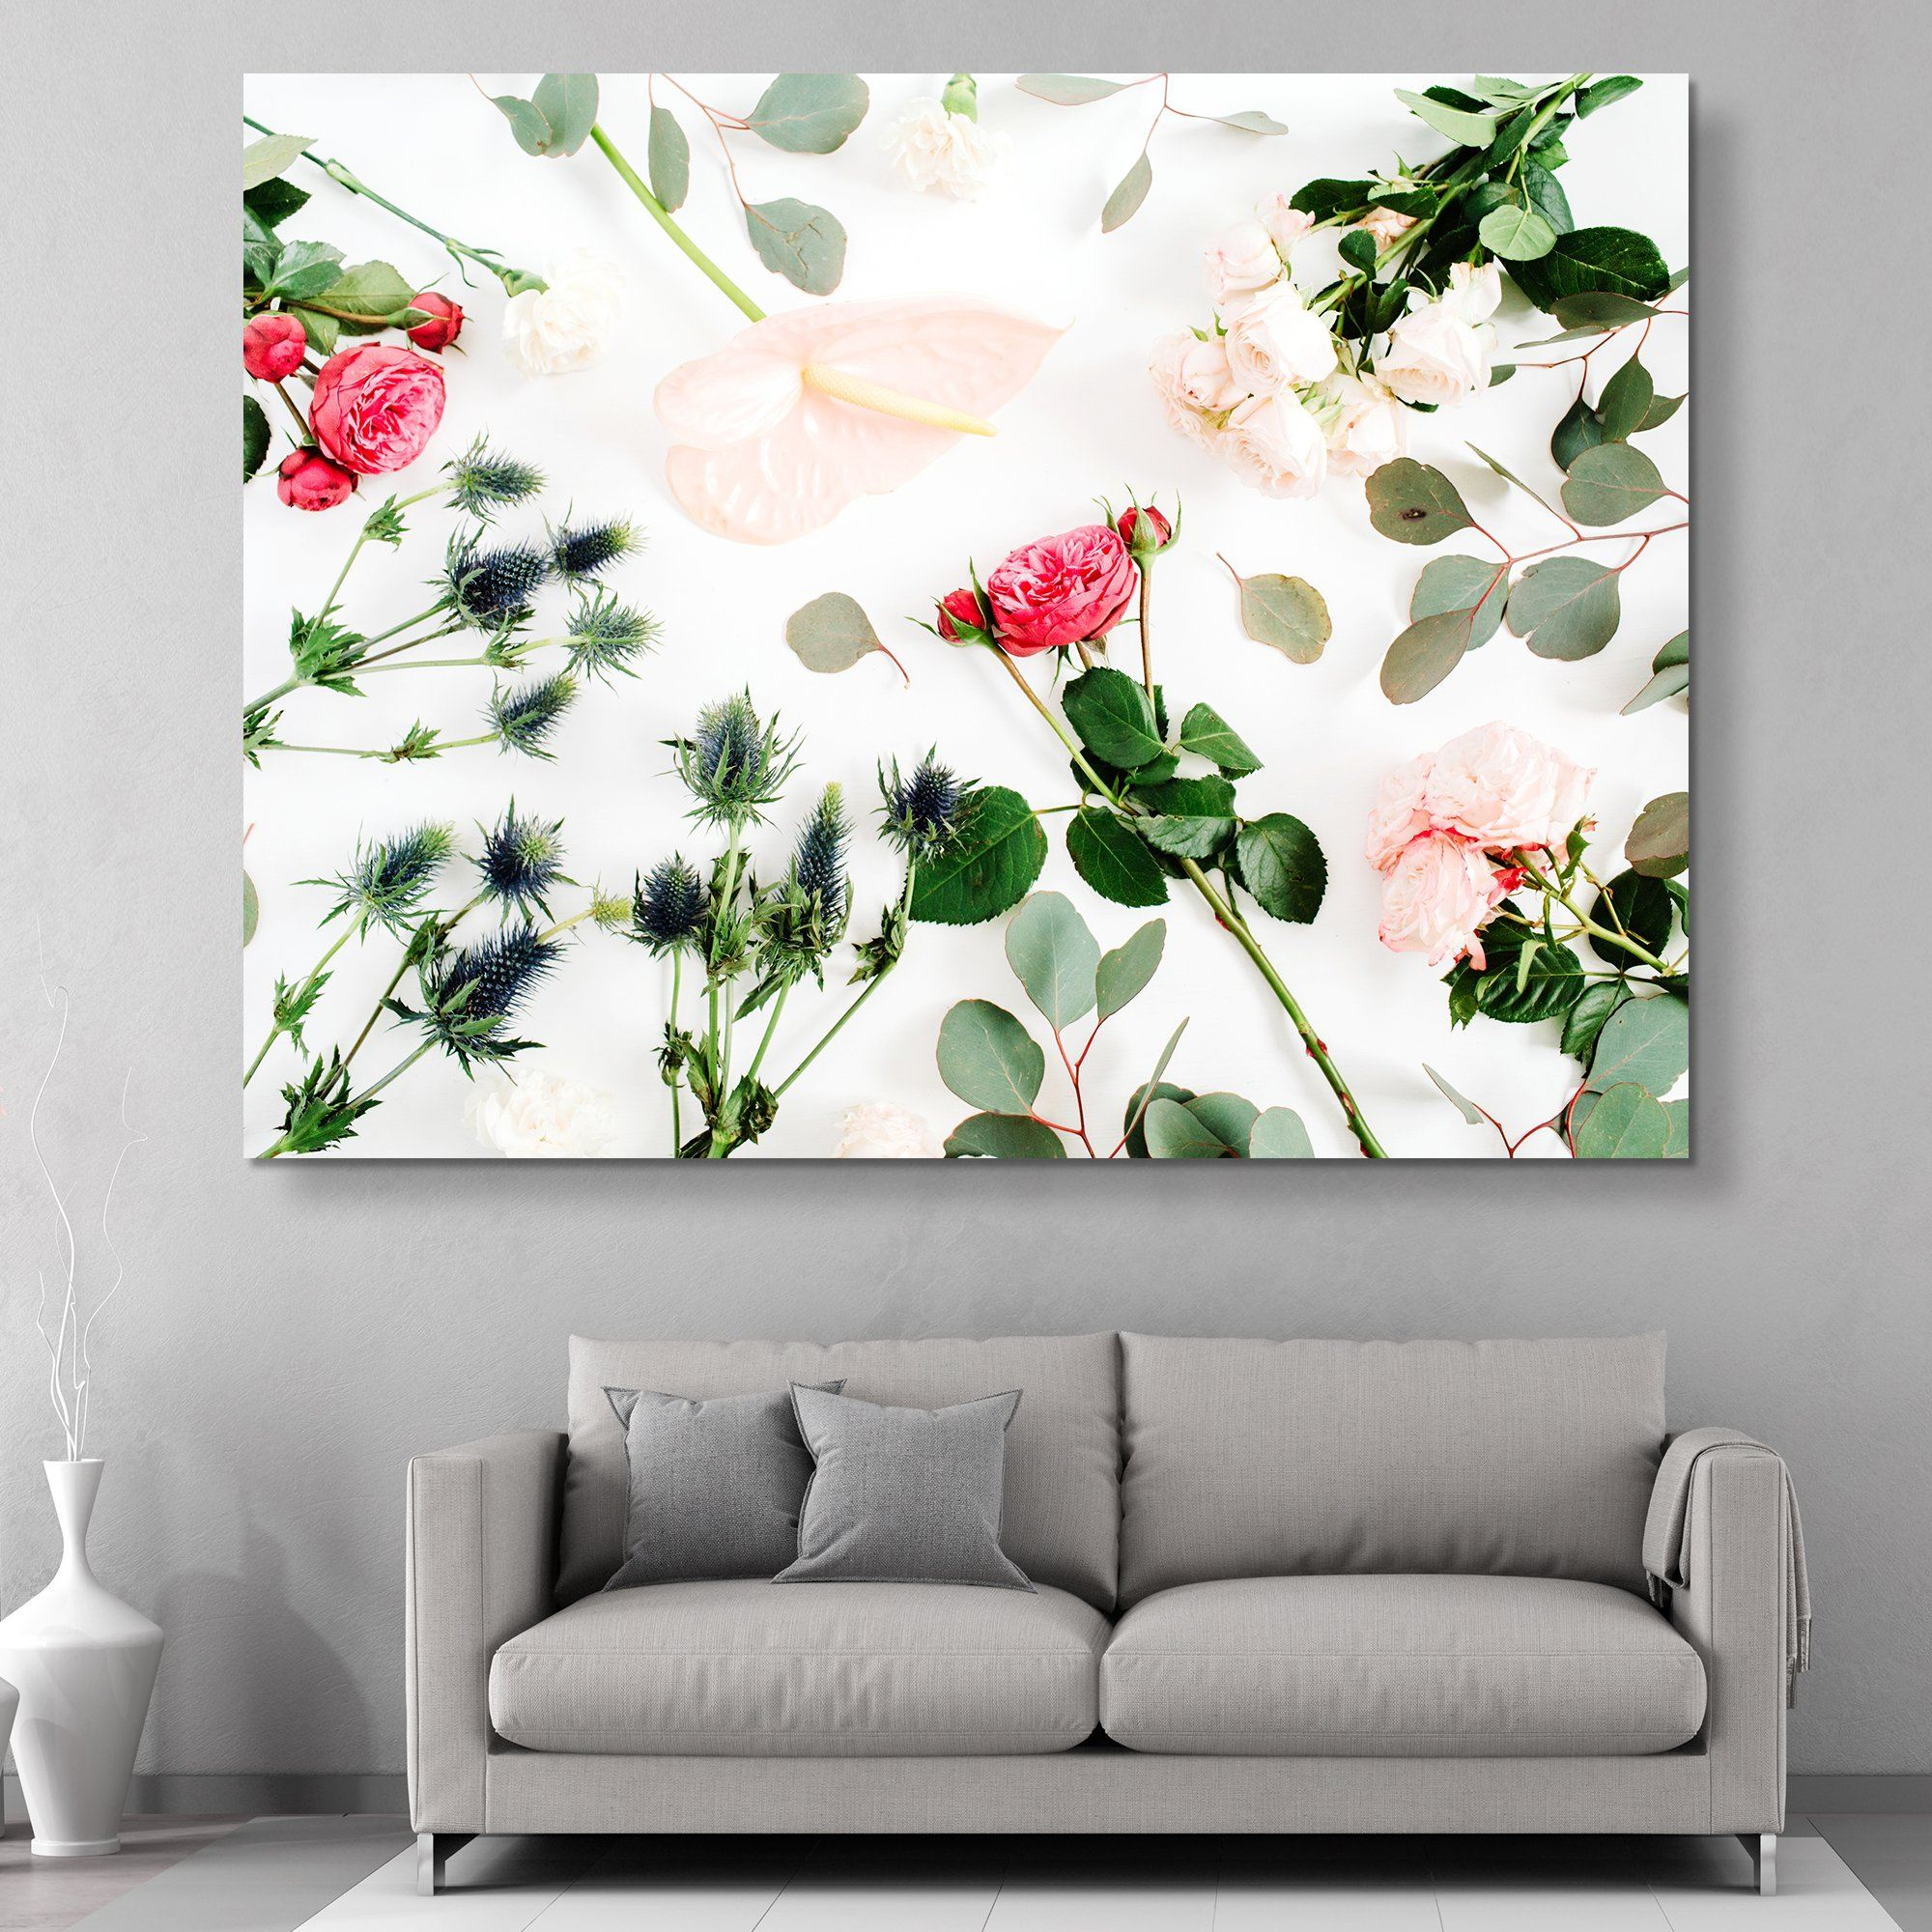 Floral Spread wall art